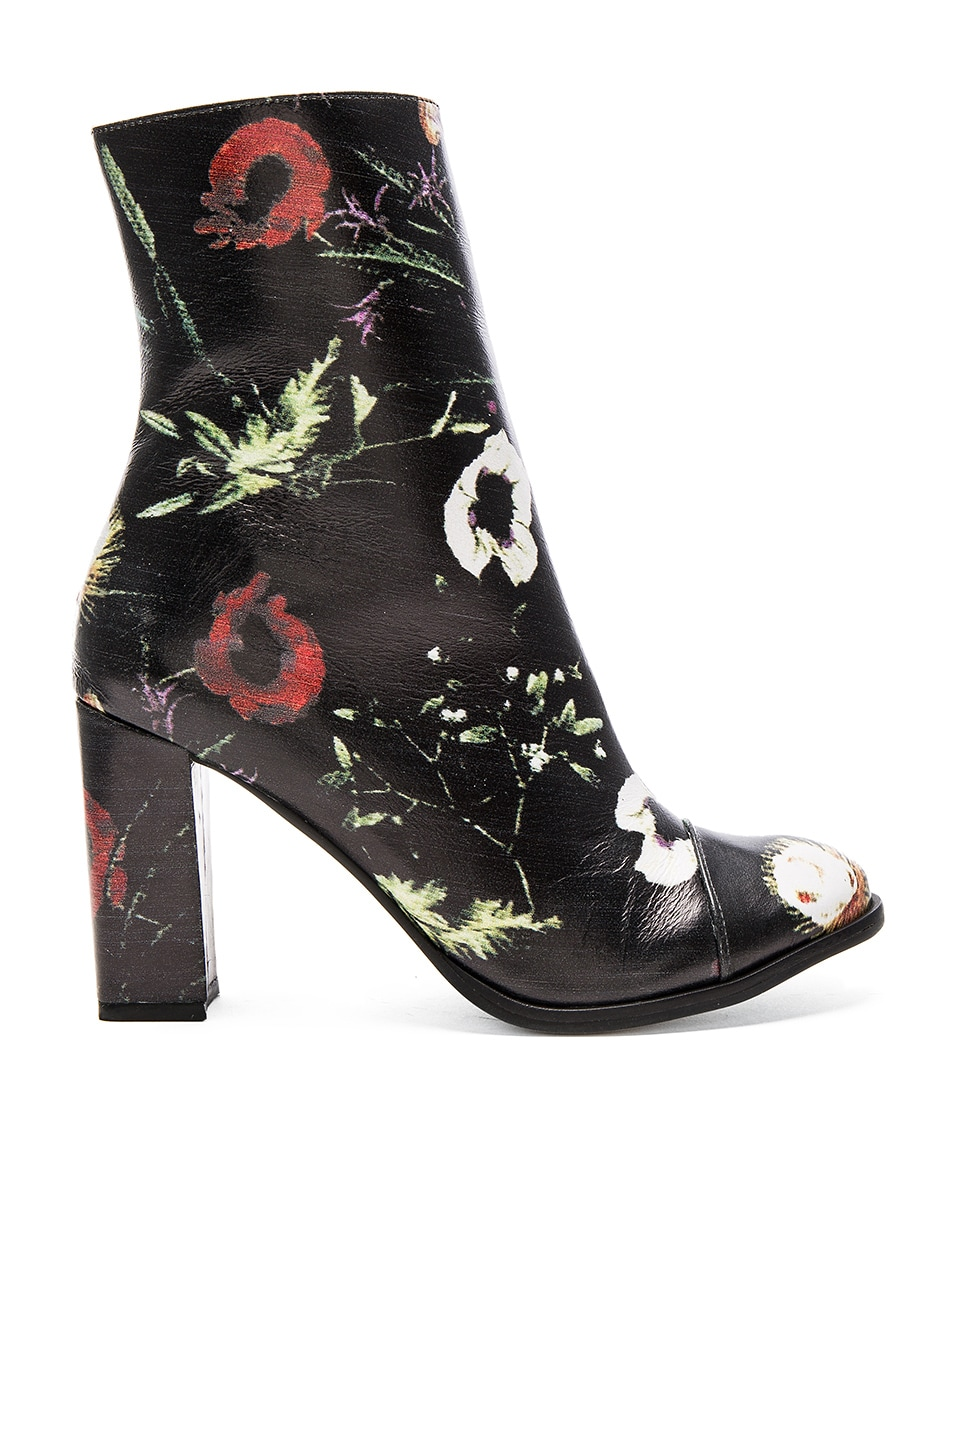 Matisse Graffiti Booties in Black Floral